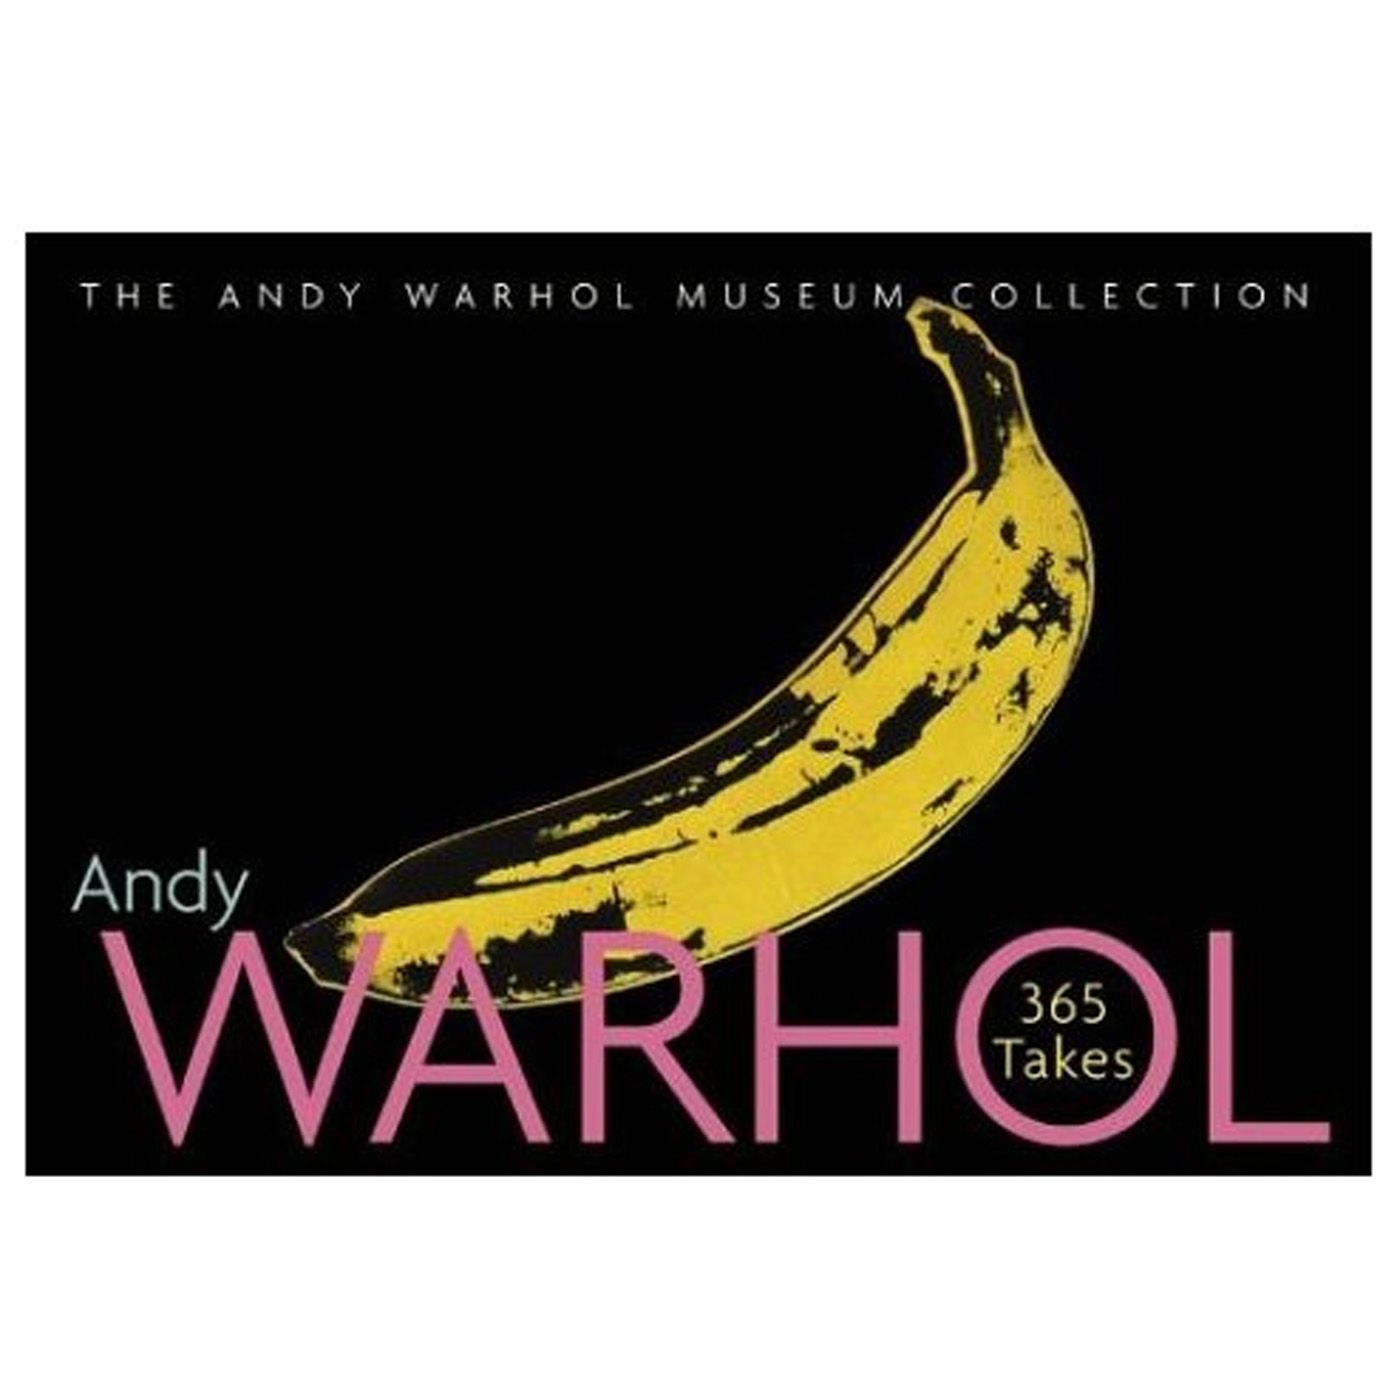 coffee table book | Andy warhol museum